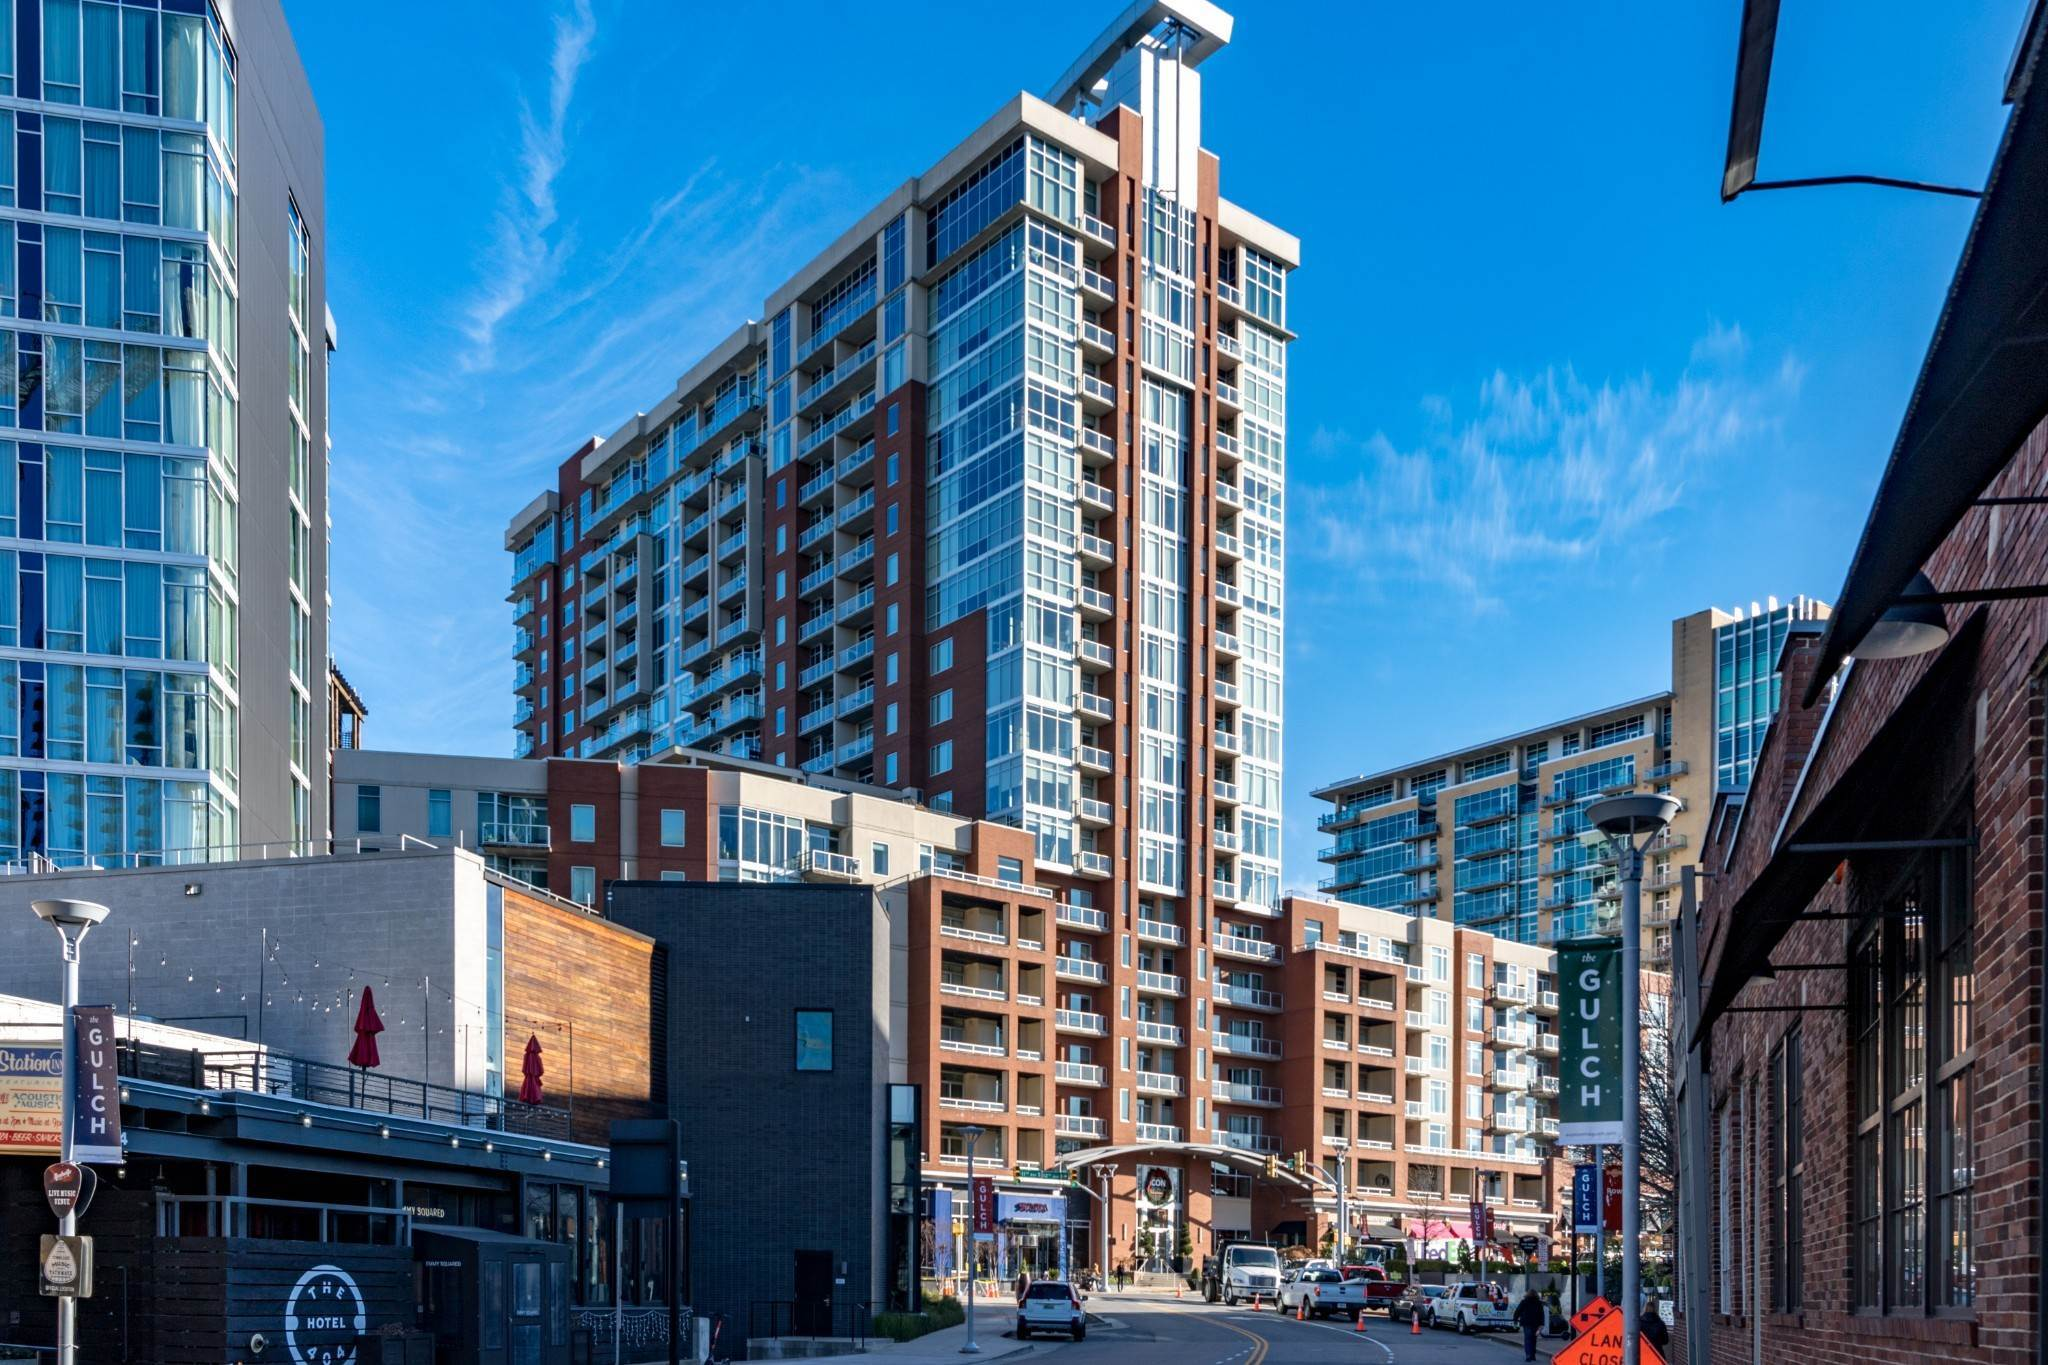 High Rise for Sale at 600 12th Ave S #521 Nashville, Tennessee 37203 United States